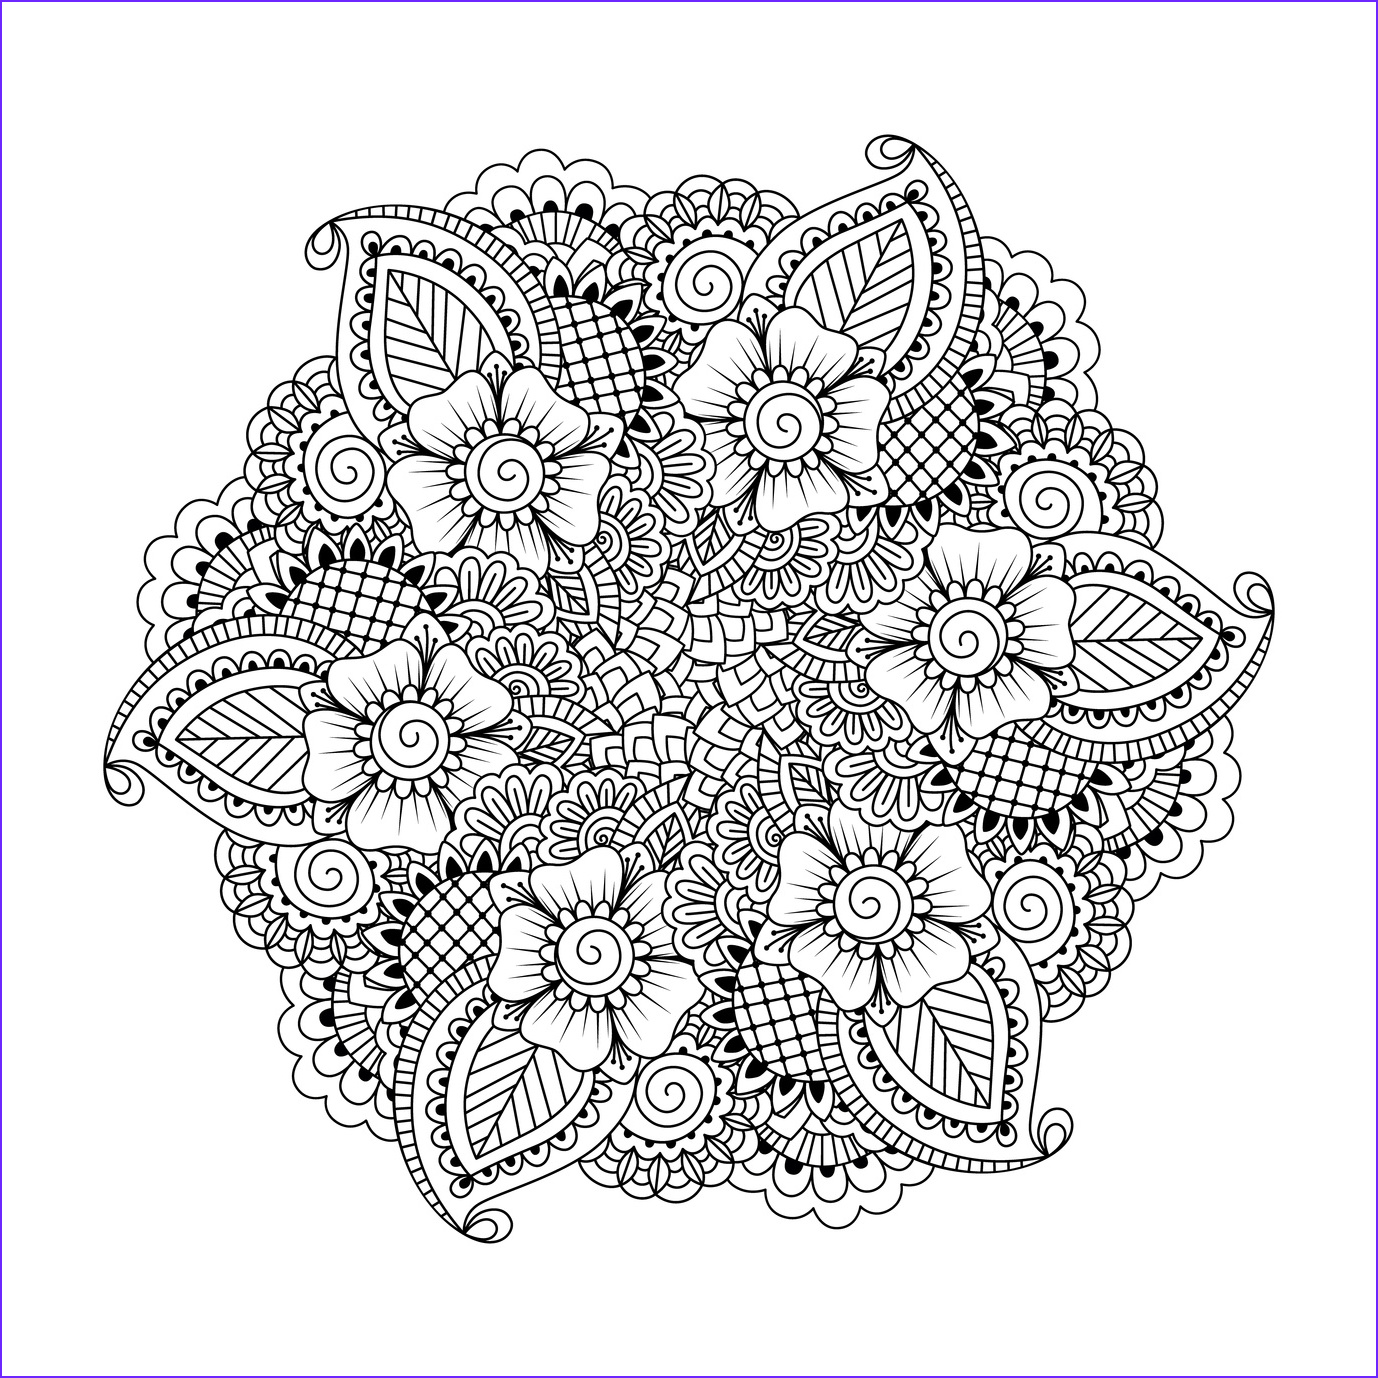 Mandala Adult Coloring Books Beautiful Images 63 Adult Coloring Pages to Nourish Your Mental Visual